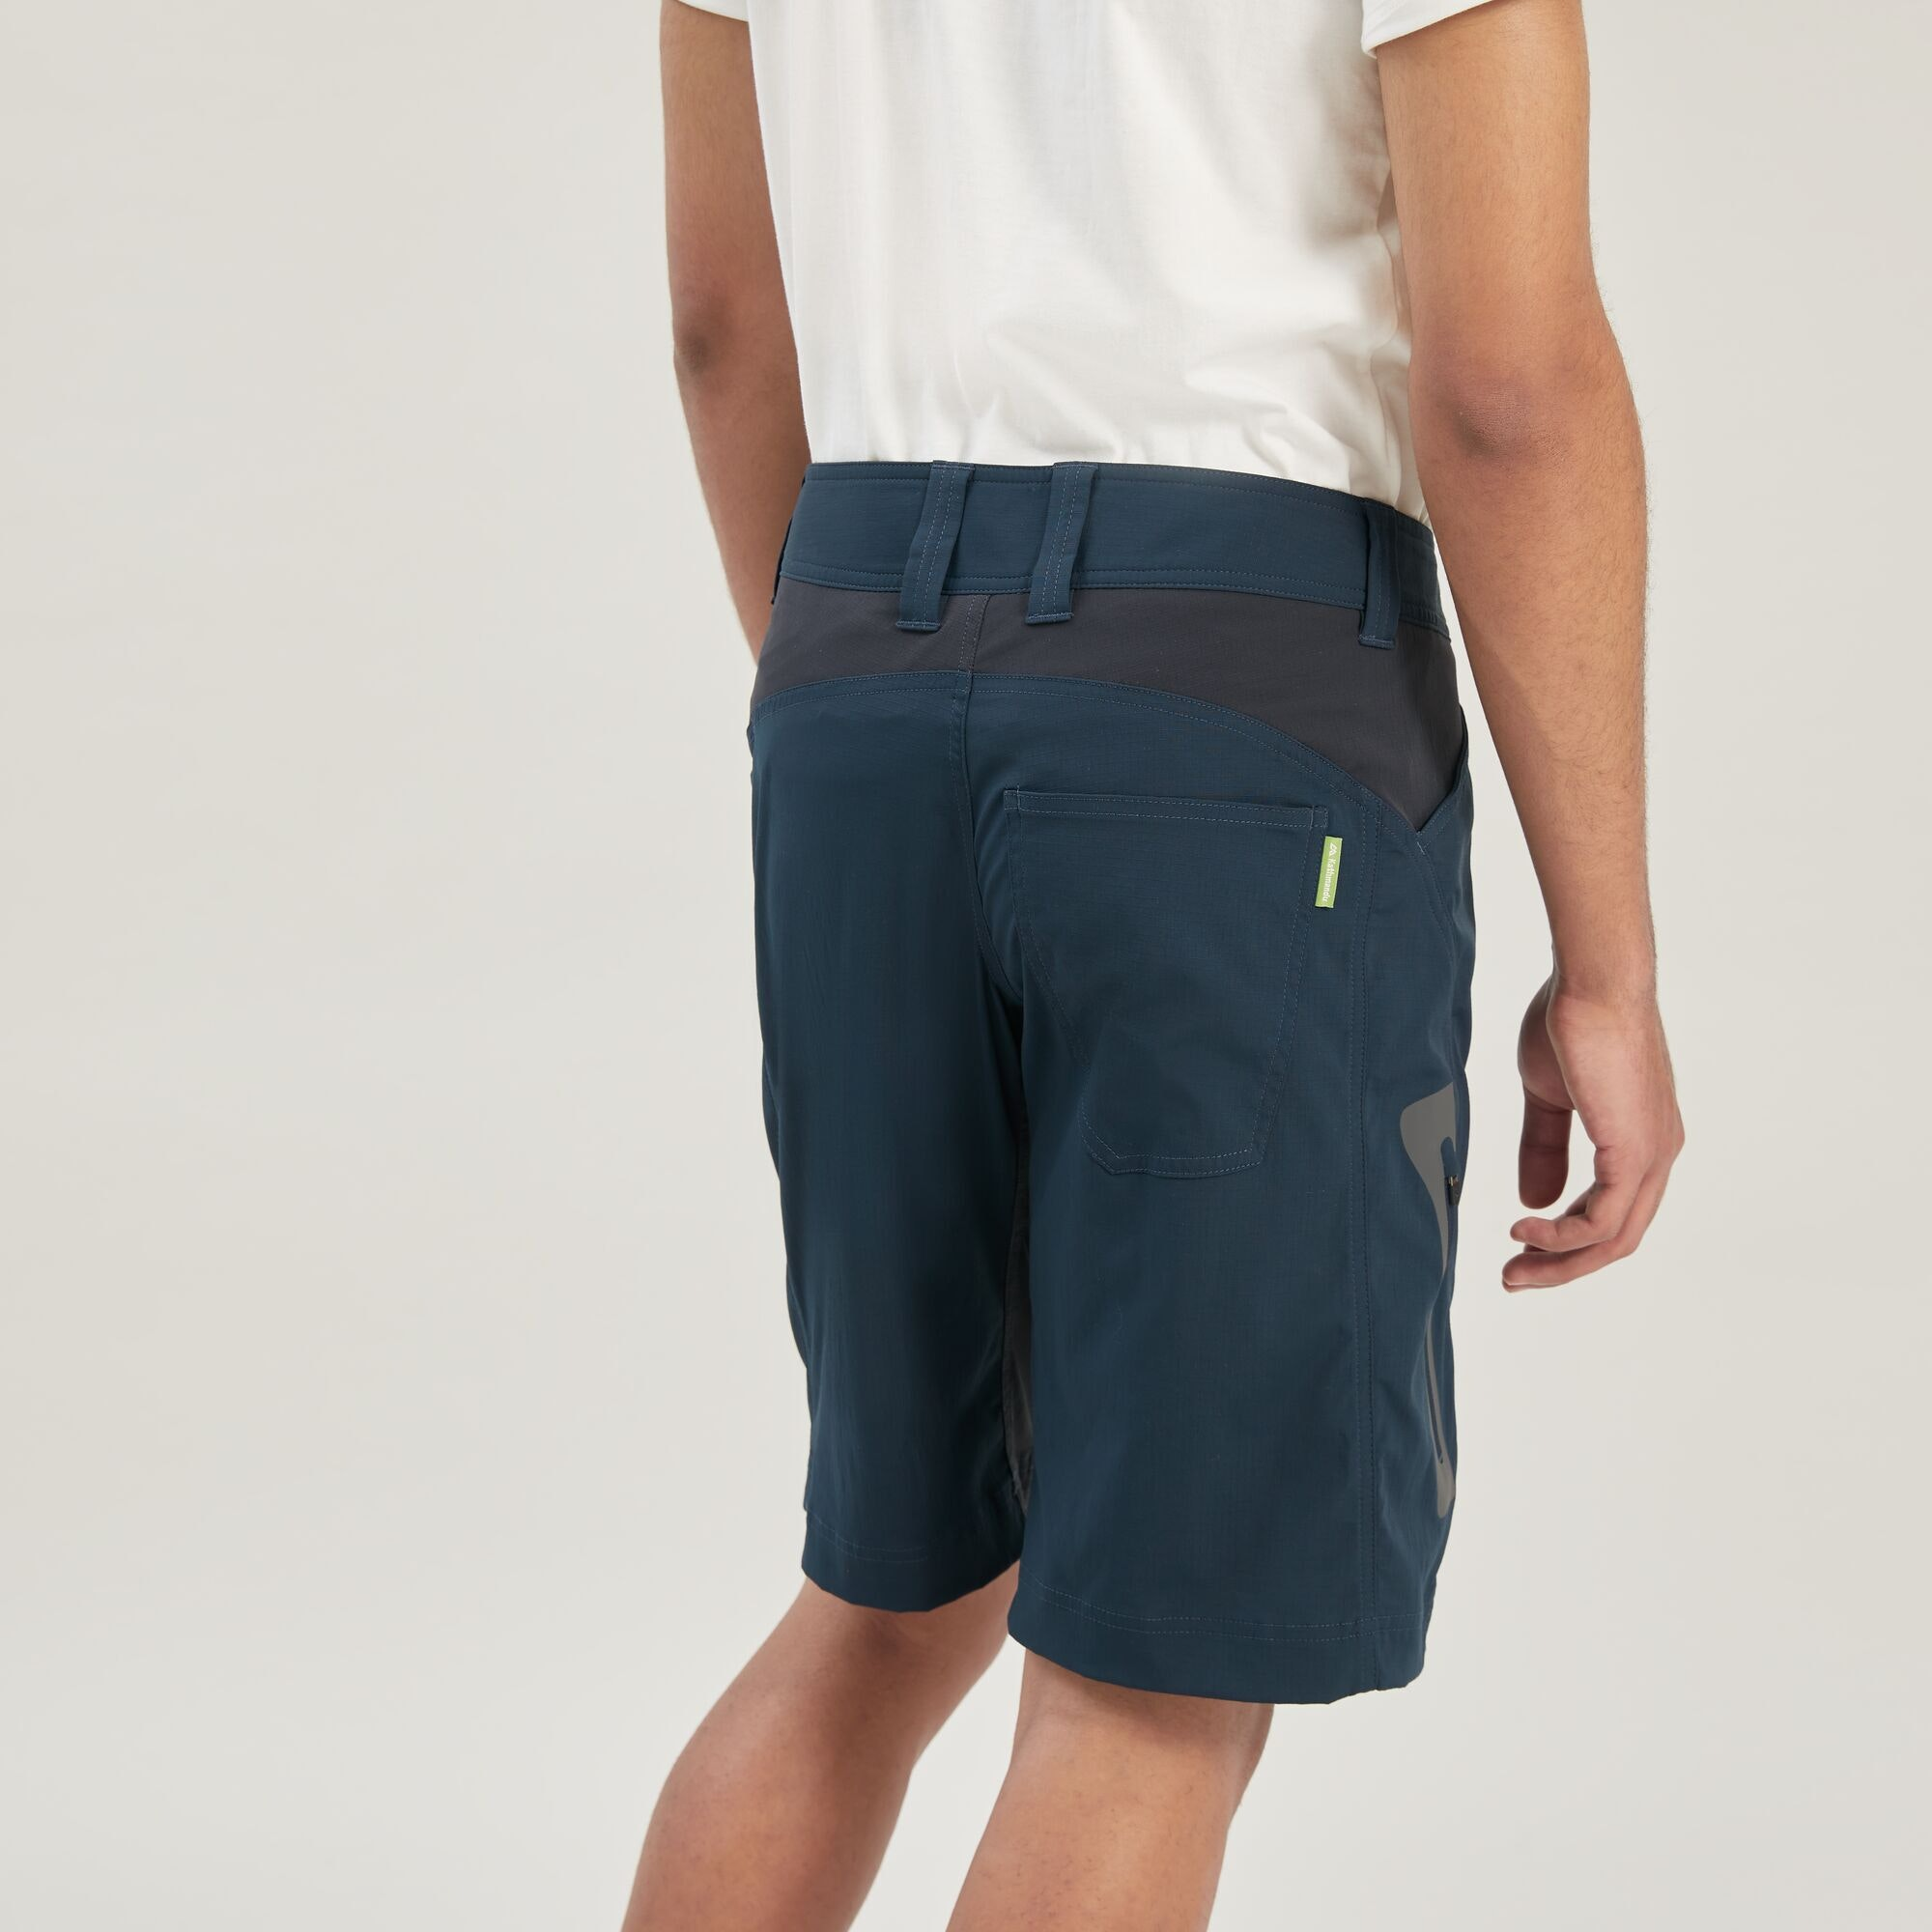 thumbnail 15 - NEW-Kathmandu-Aklo-Men-039-s-Walking-Hiking-Travel-Shorts-Pants-UPF-50-Protection